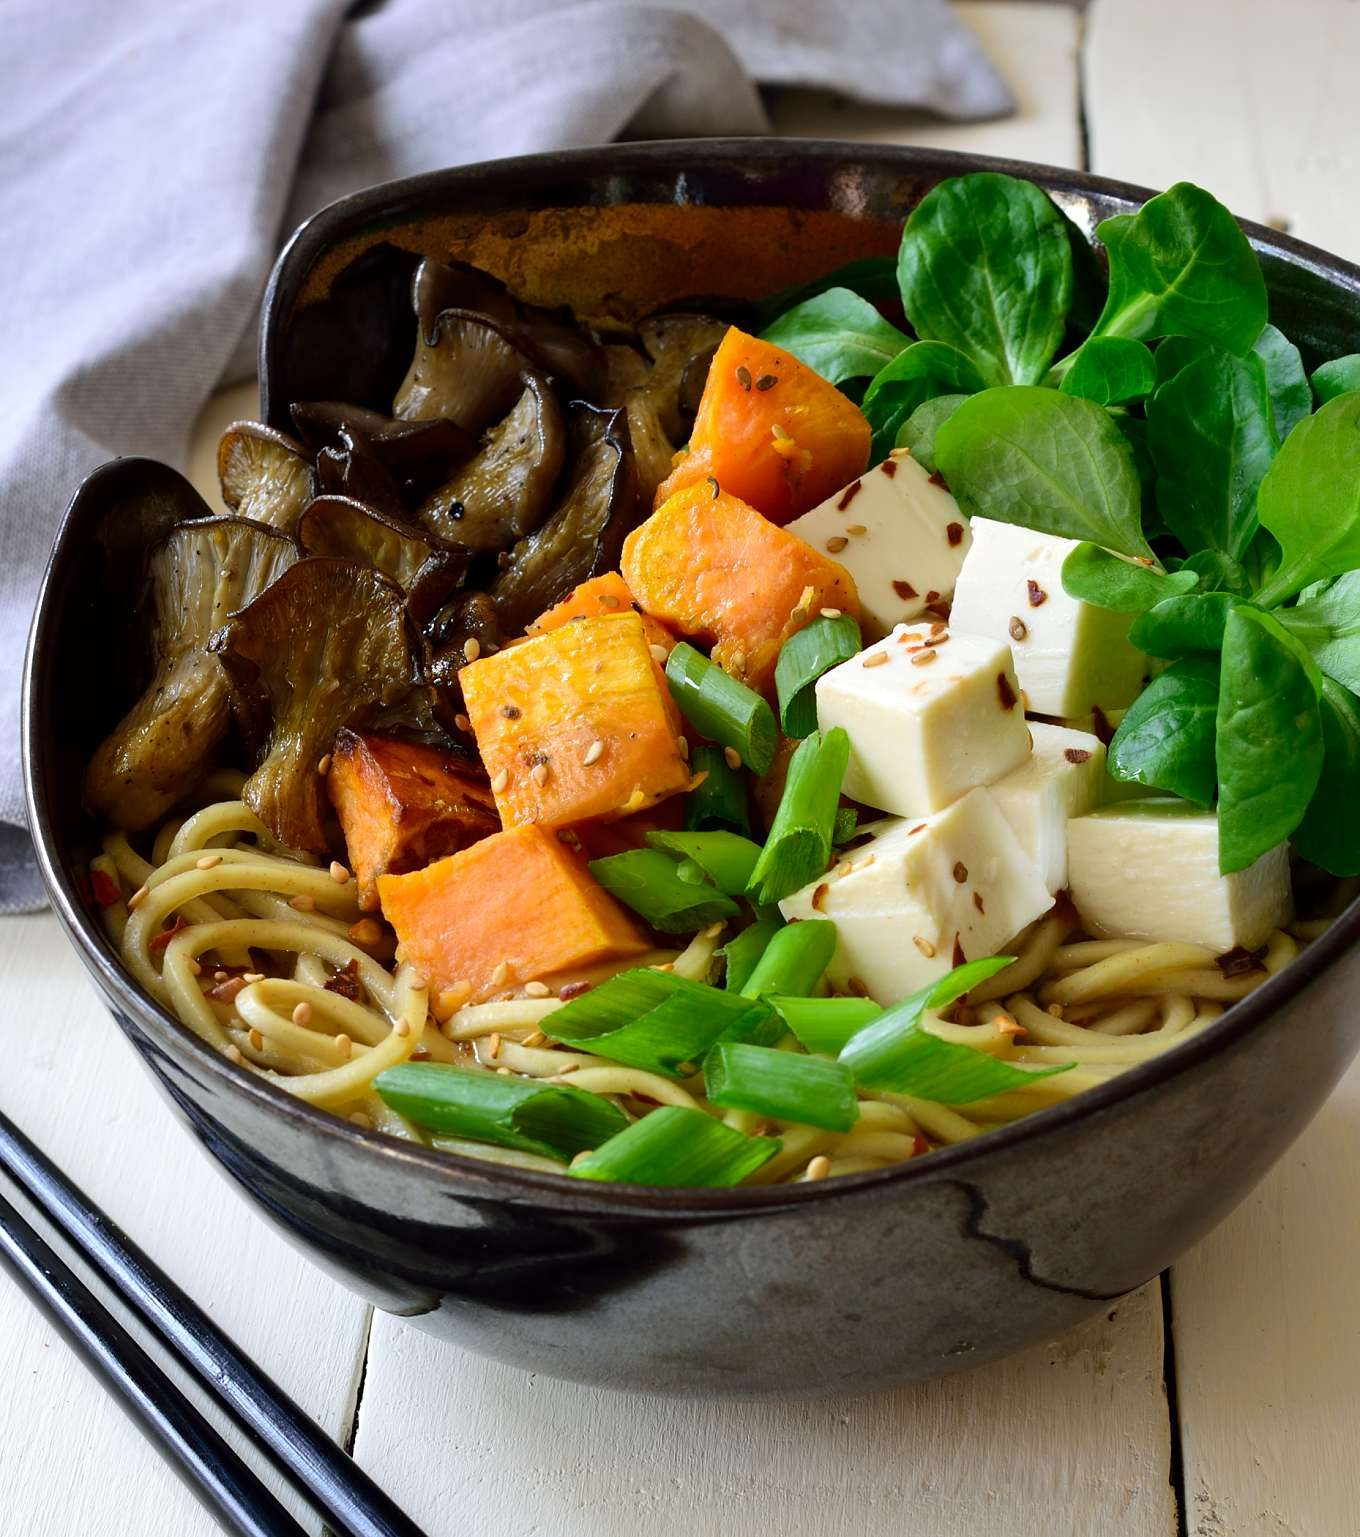 Fresh vegetables, silky soft tofu and homemade broth will give you a healthy, satisfying and oh-so-tasty ramen experience. This mushroom ramen recipe is replete with the flavours of autumn: fresh mushrooms, sweet potato and leafy greens.